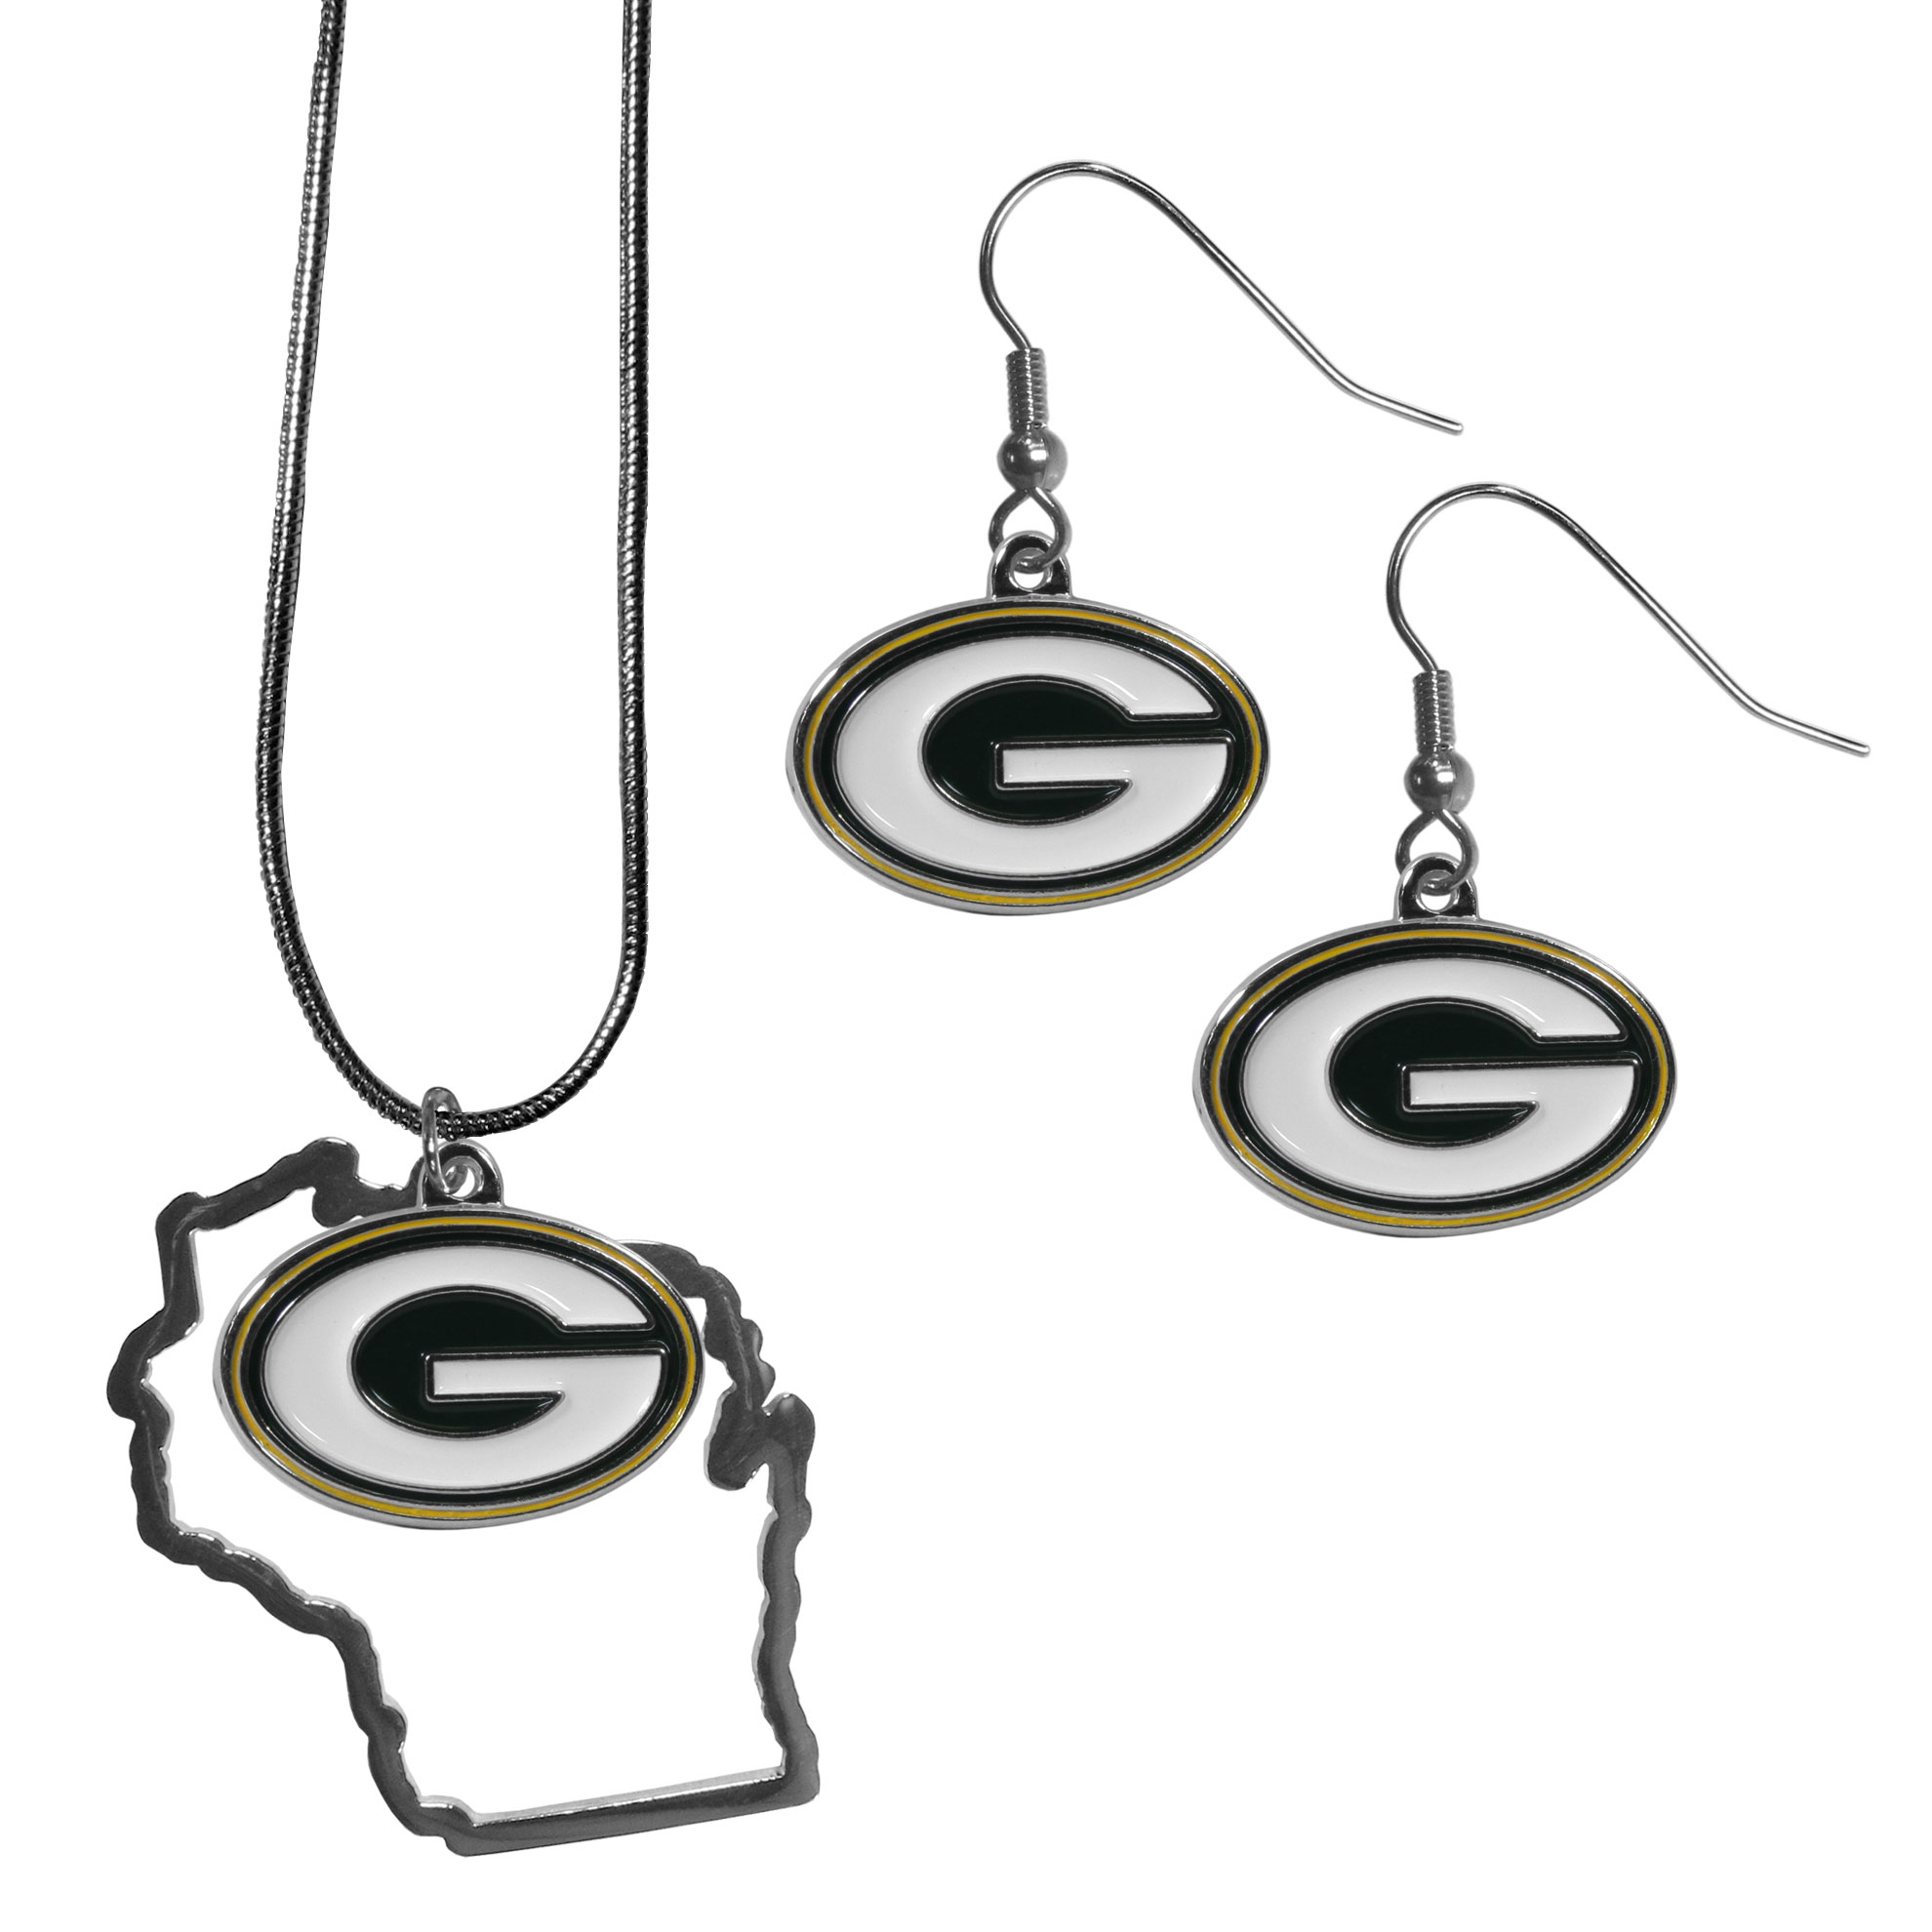 Green Bay Packers Dangle Earrings and State Necklace Set - Get in on the trend! State themes are a trend that just keeps getting more popular and this jewelry set takes the state style and give it a sporty twist with a Green Bay Packers necklace that features an Arizona state outline charm paired with a beautiful team charm and matching team charm dangle earrings. The earrings feature hypoallergenic fishhook posts that are nickel free.